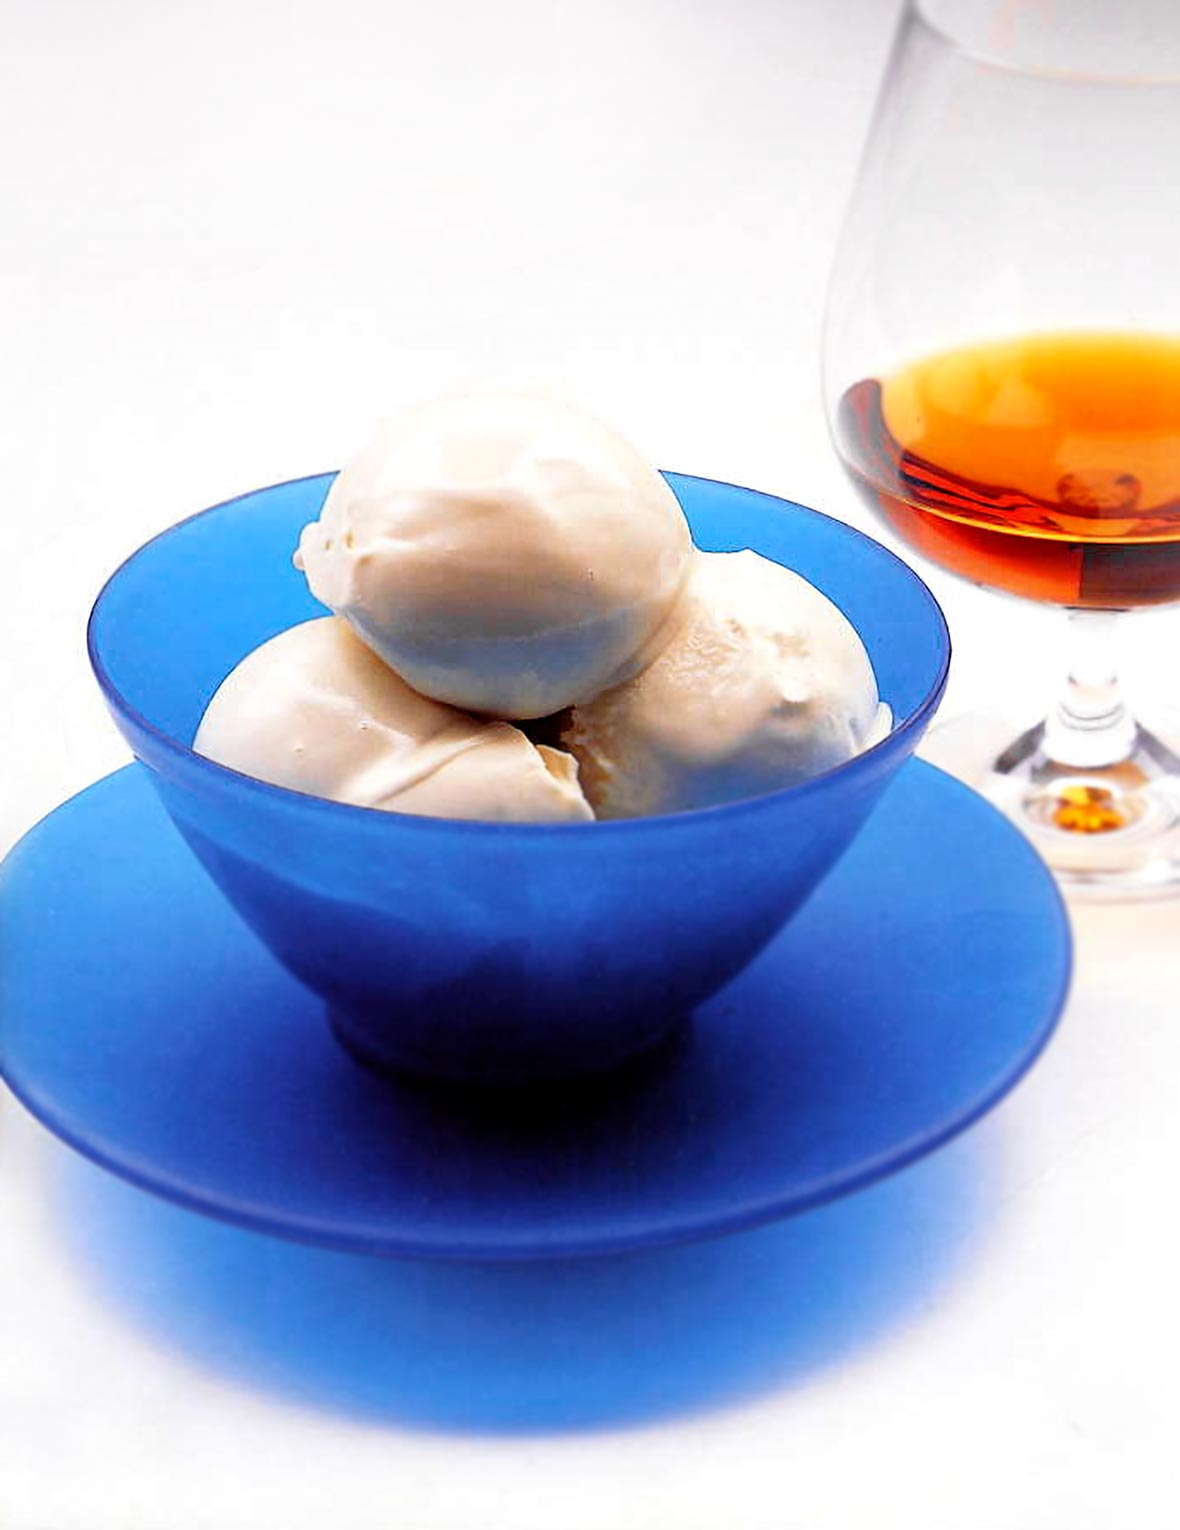 A blue glass bowl fill with creamy, white Armagnac ice cream, a snifter of Armagnac behind